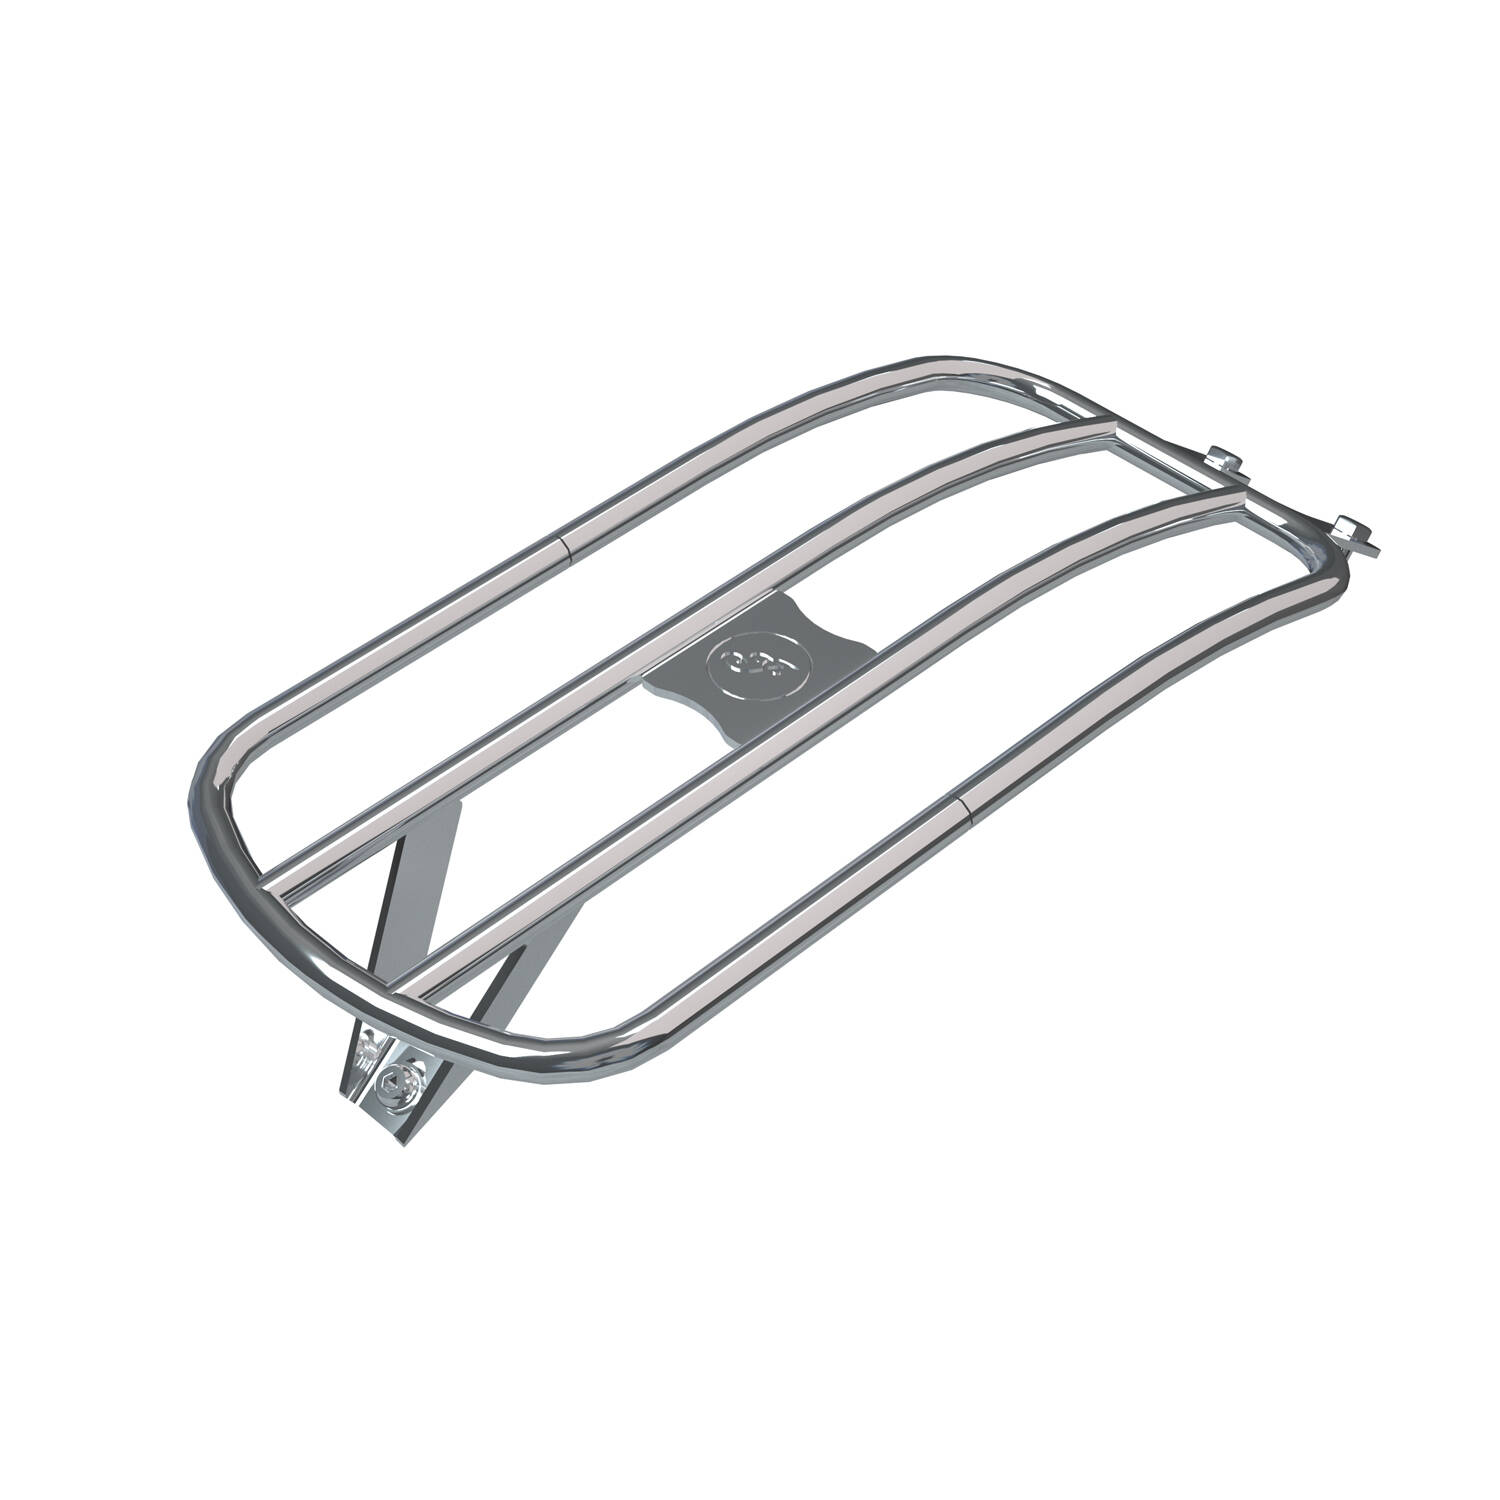 Steel Rear Solo Luggage Rack, Black